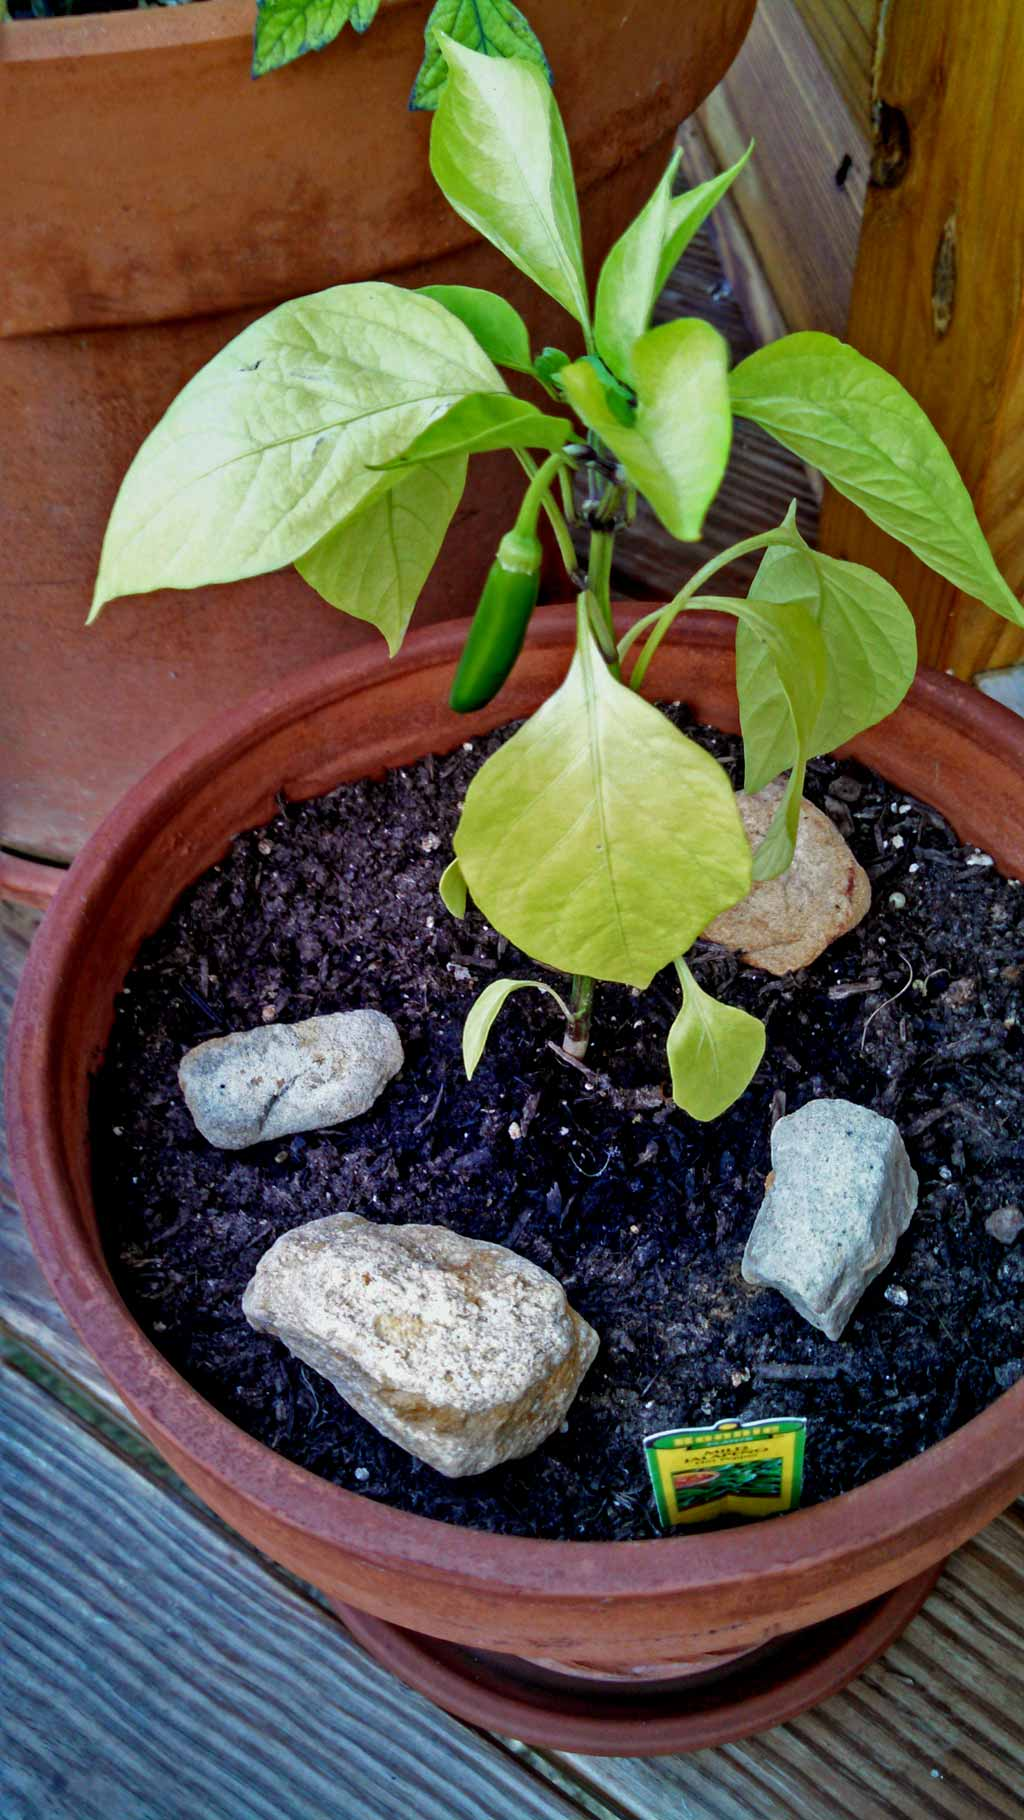 """I spotted a Jalapeno plant and decided I wastaking this guy home. I showed it to David and said: """"Look! We can have a Jose Jalapeno On The Deck!"""" 